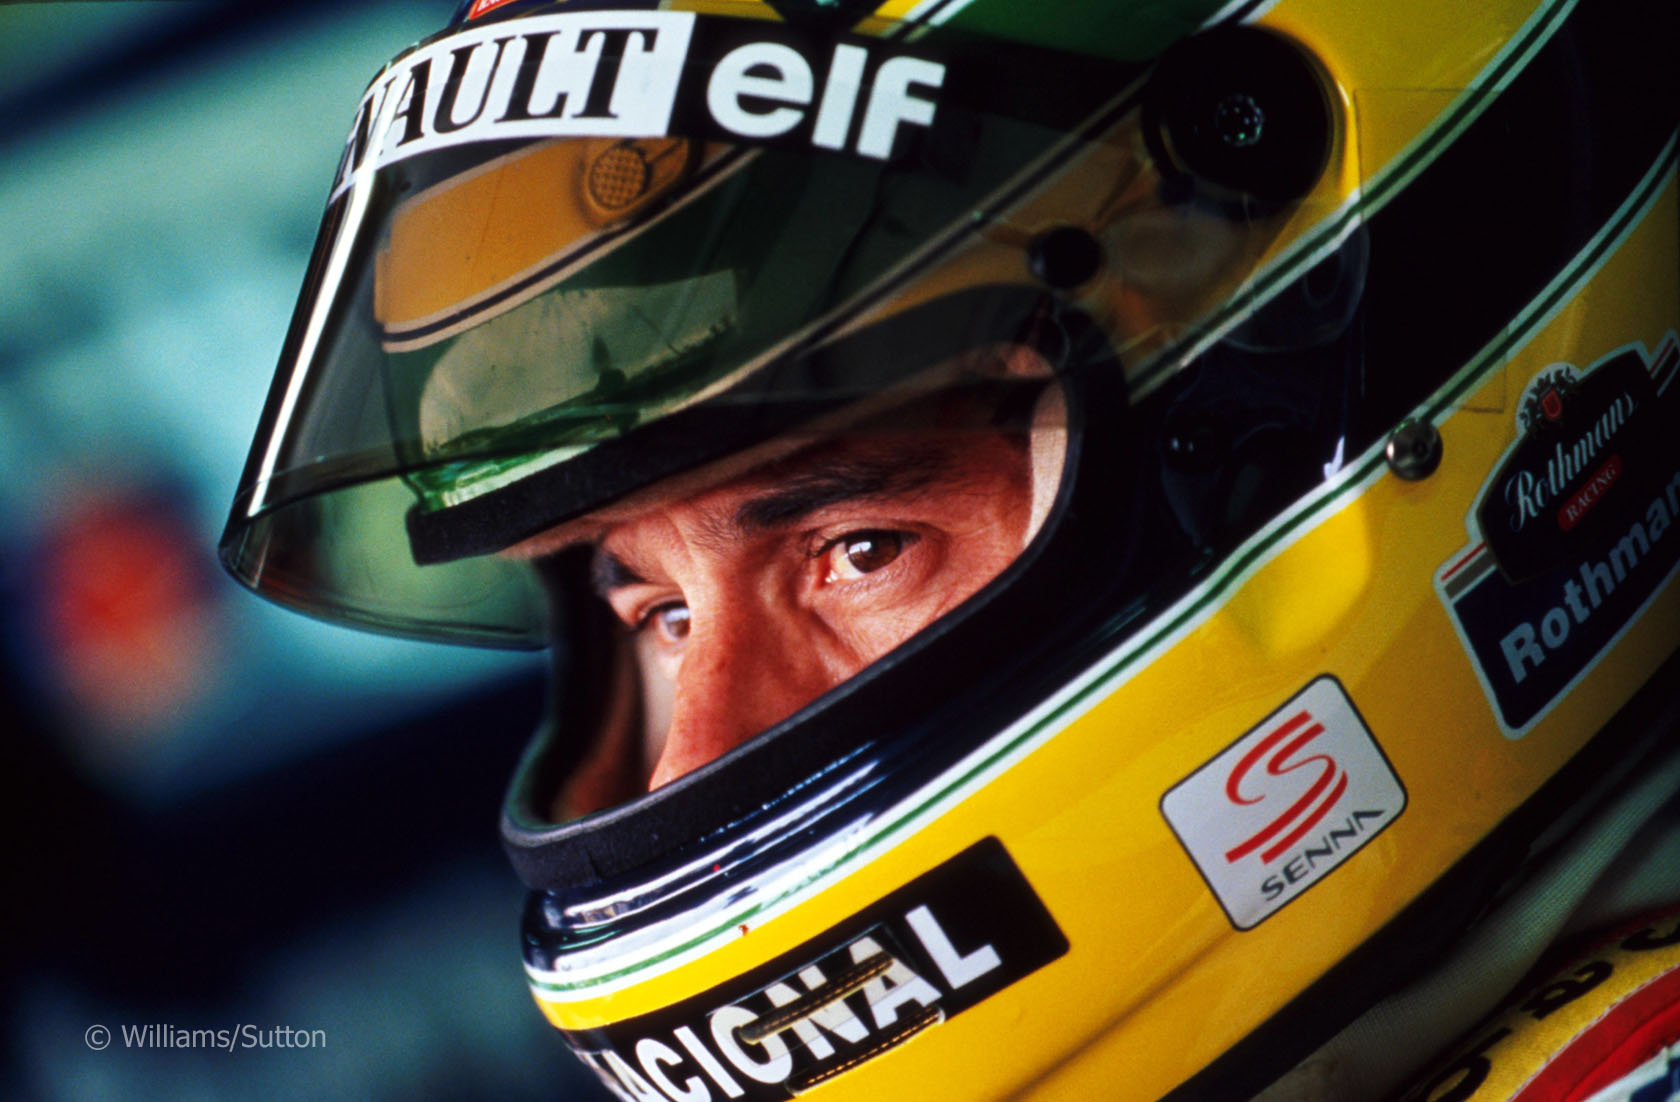 http://www.f1fanatic.co.uk/2011/08/12/ayrton-senna-f1-fanatic-quiz/formula-one-world-championship-713/